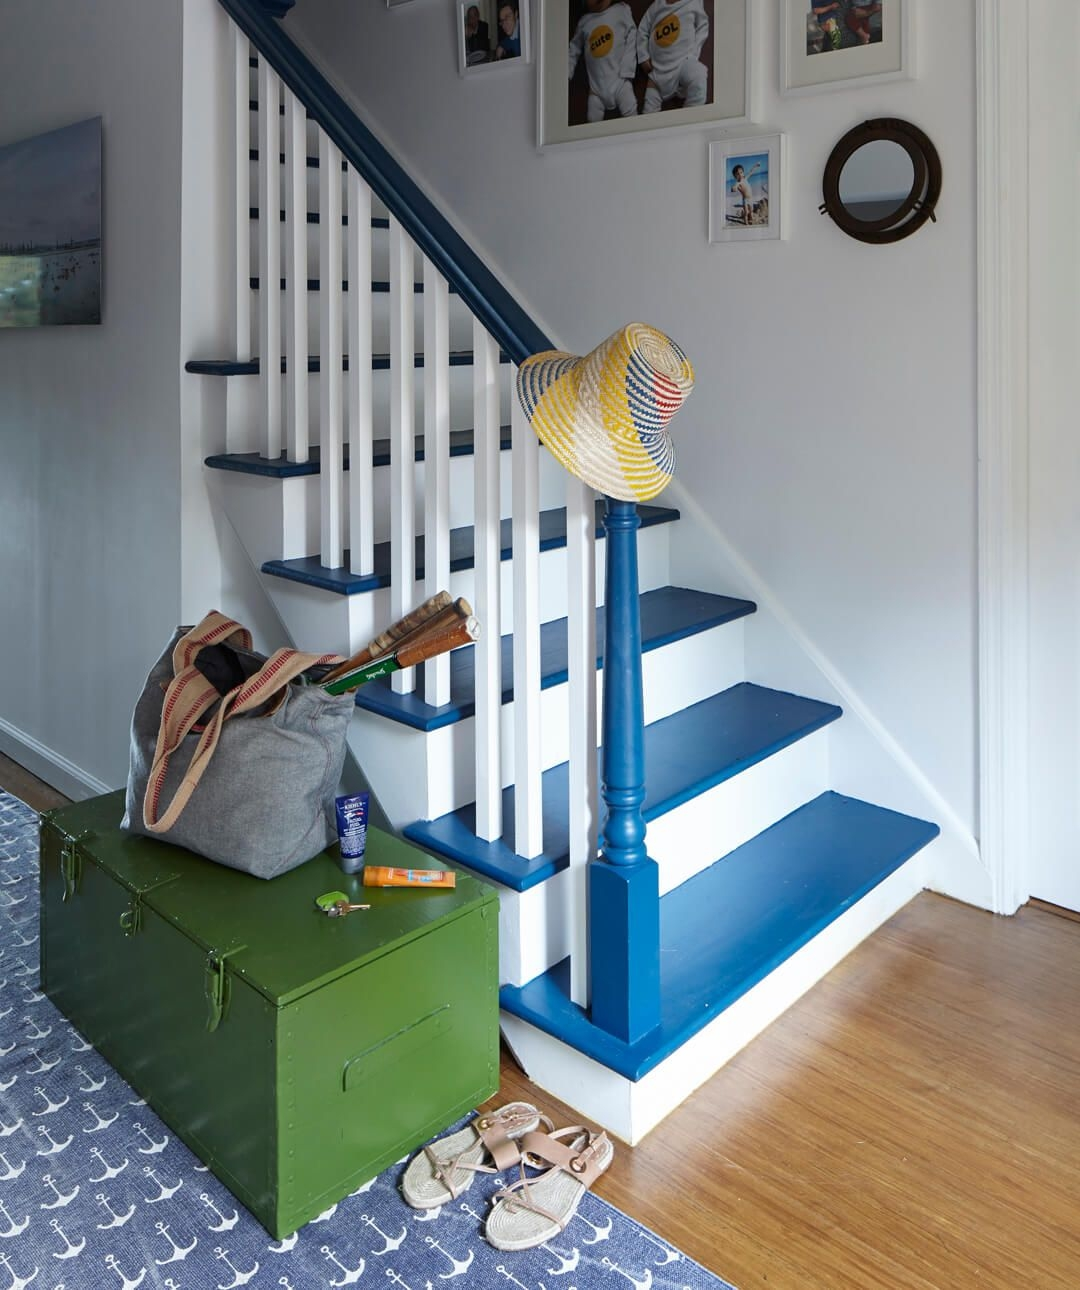 How To Paint Stairs The Right Way To Paint Stairs | Stairs Wall Paint Design | Luxury Staircase Wall | Wallpaper | Wall Colour | Beautiful | Wall Painting